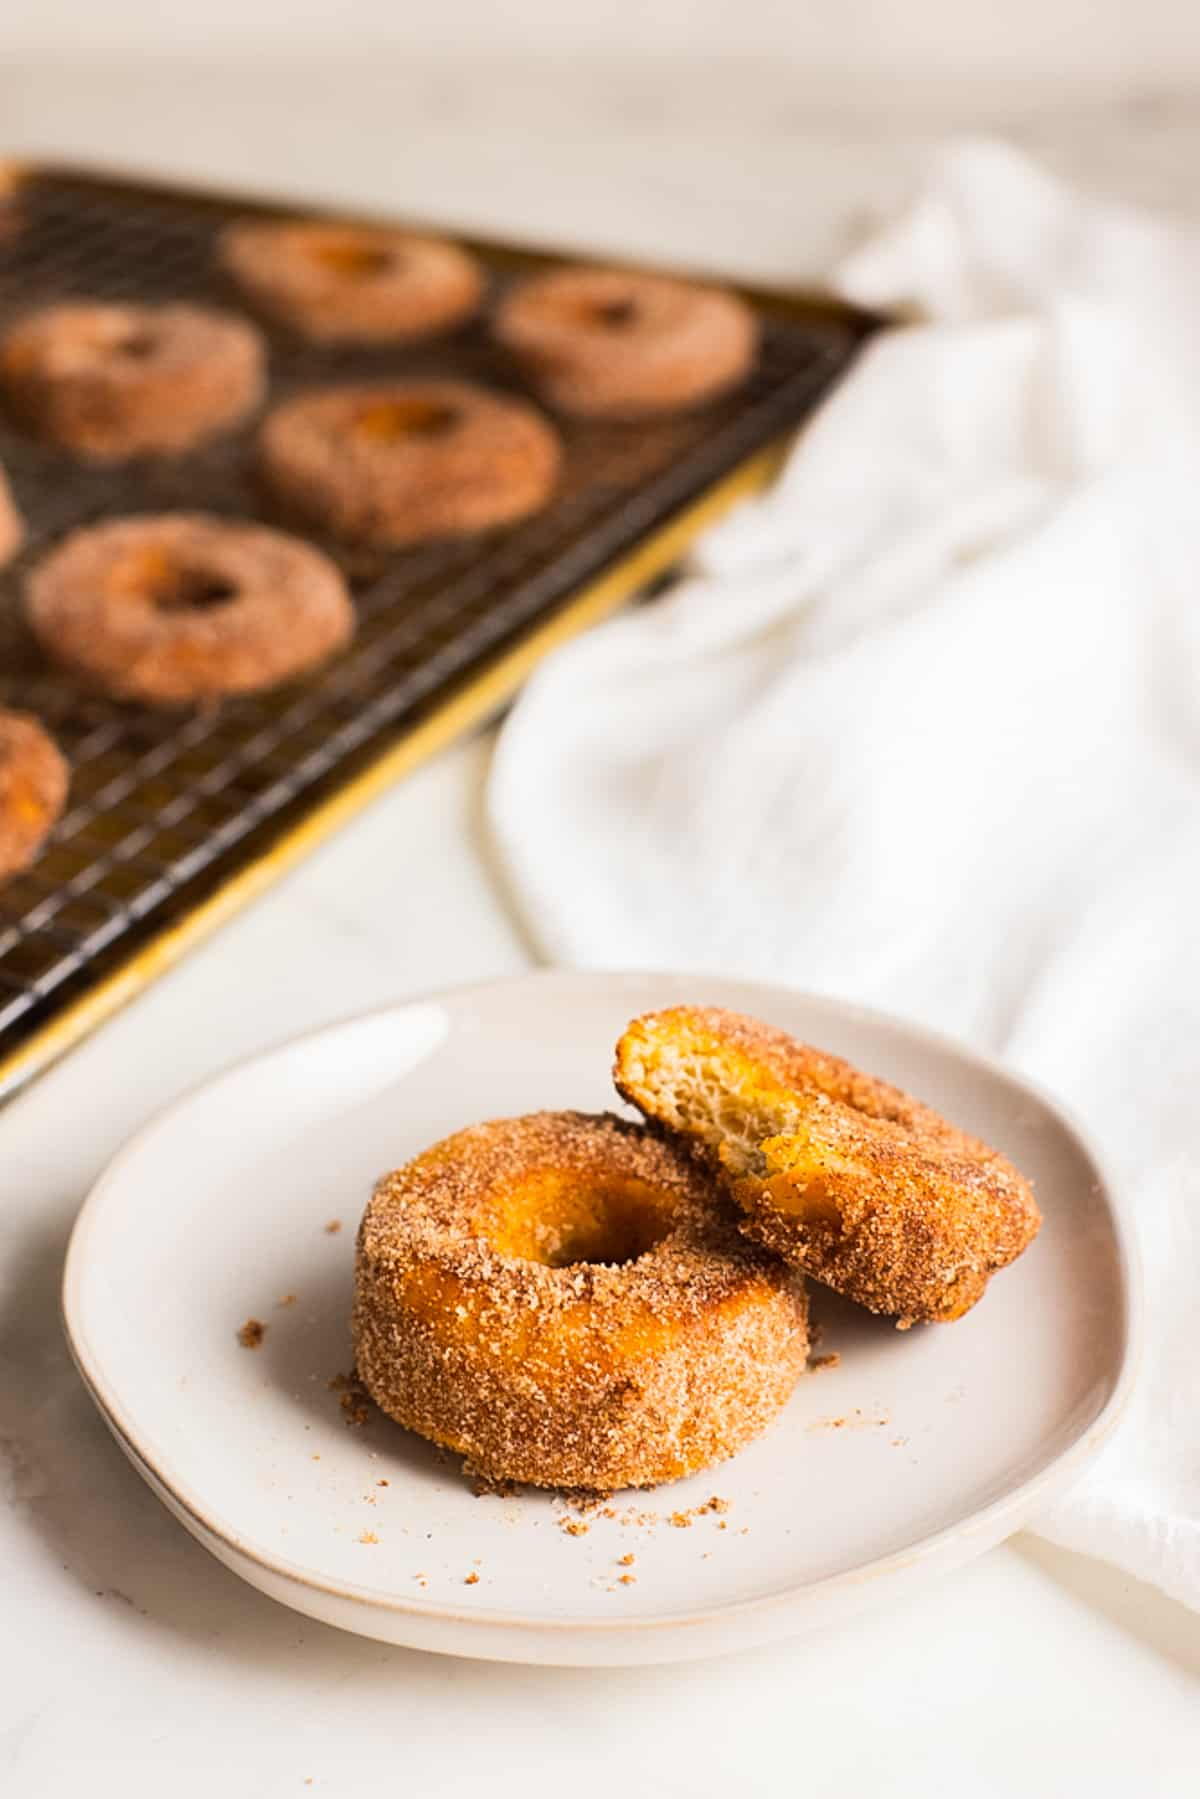 two donuts on a white plate with more donuts on a cooling rack in the background